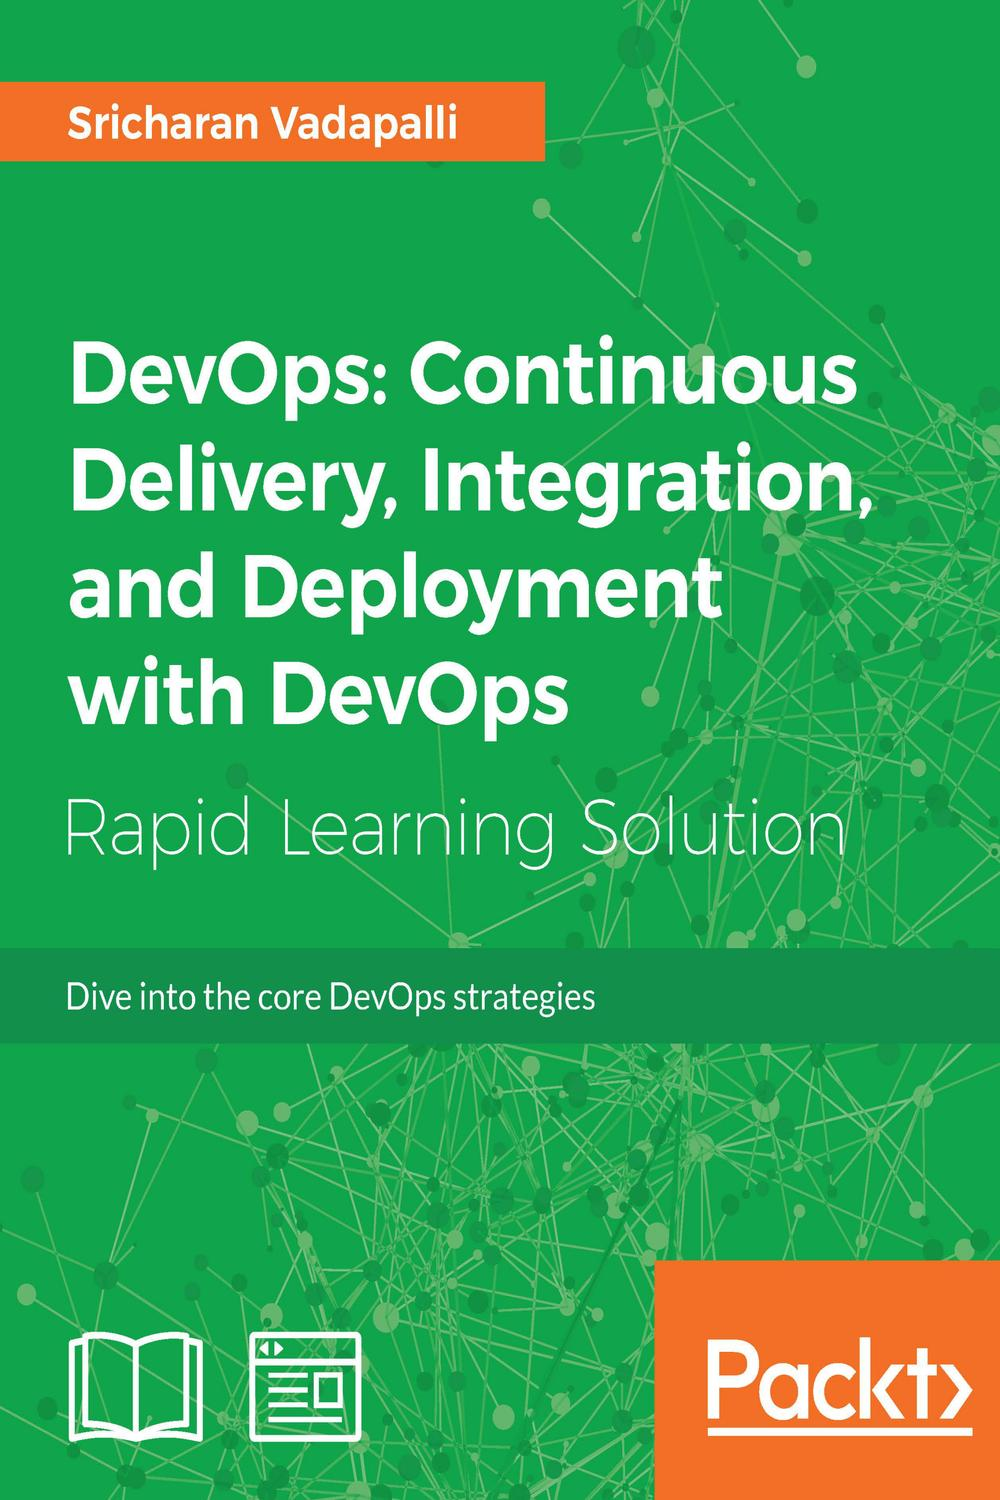 DevOps: Continuous Delivery, Integration, and Deployment